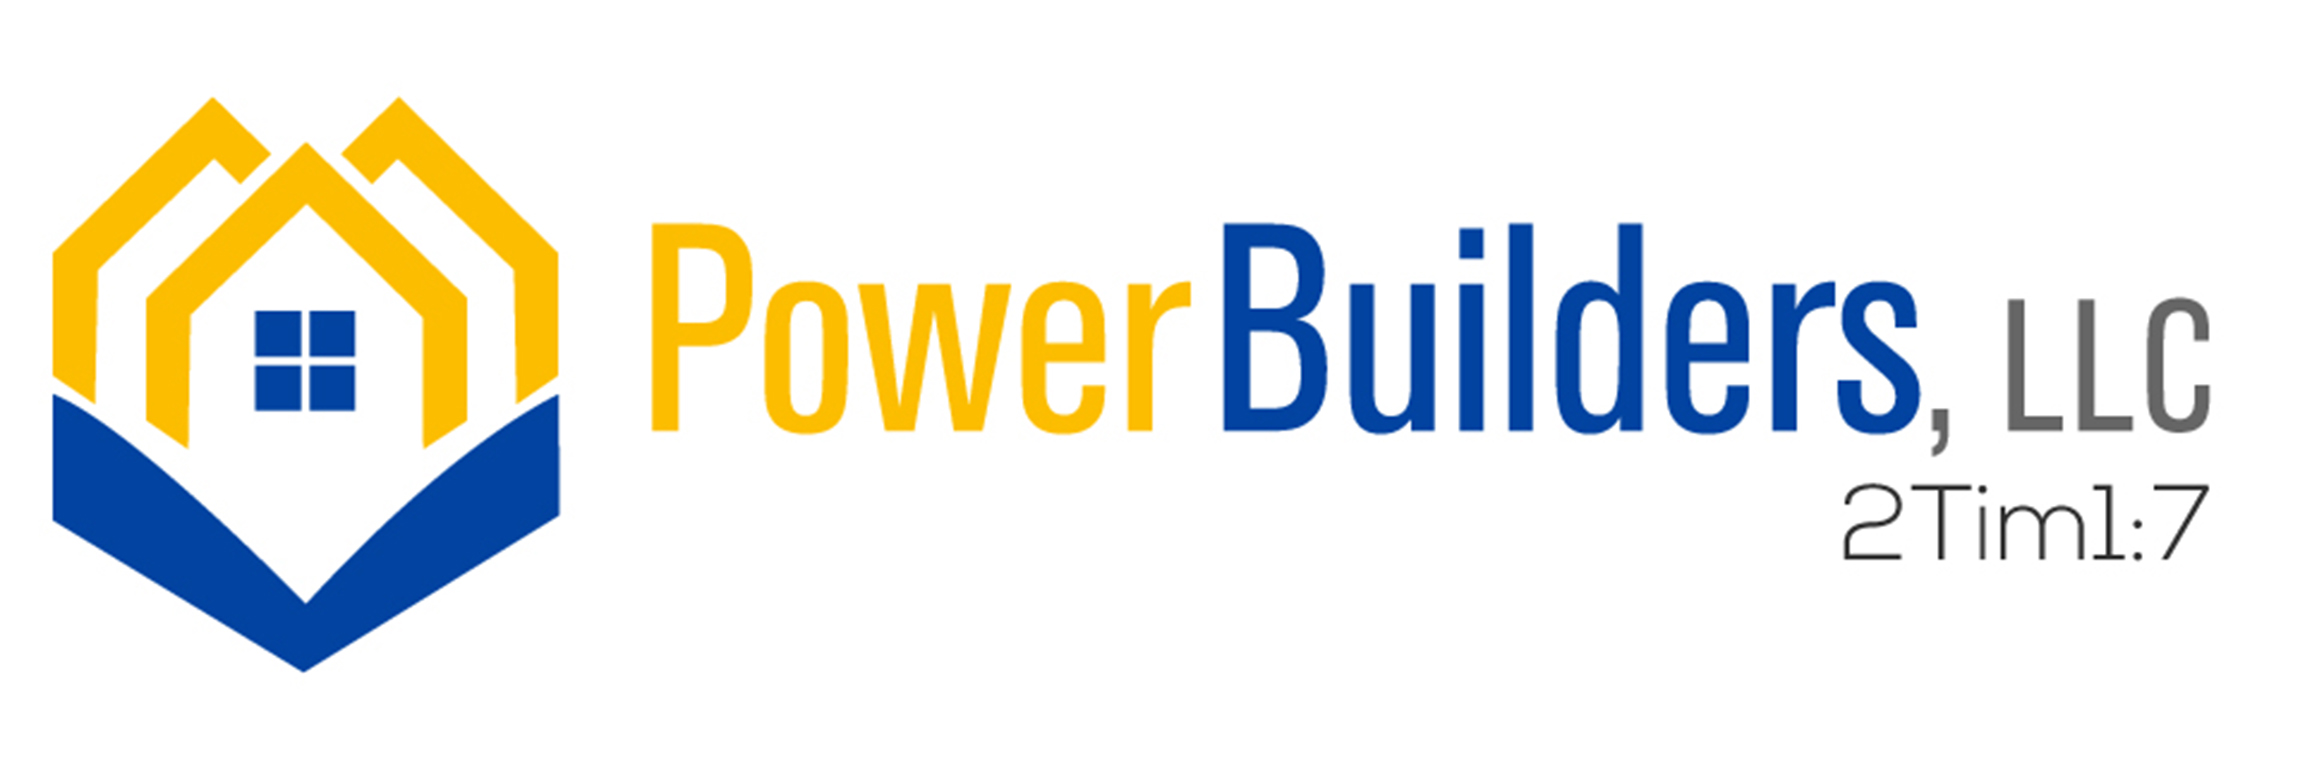 Power Builders LLC